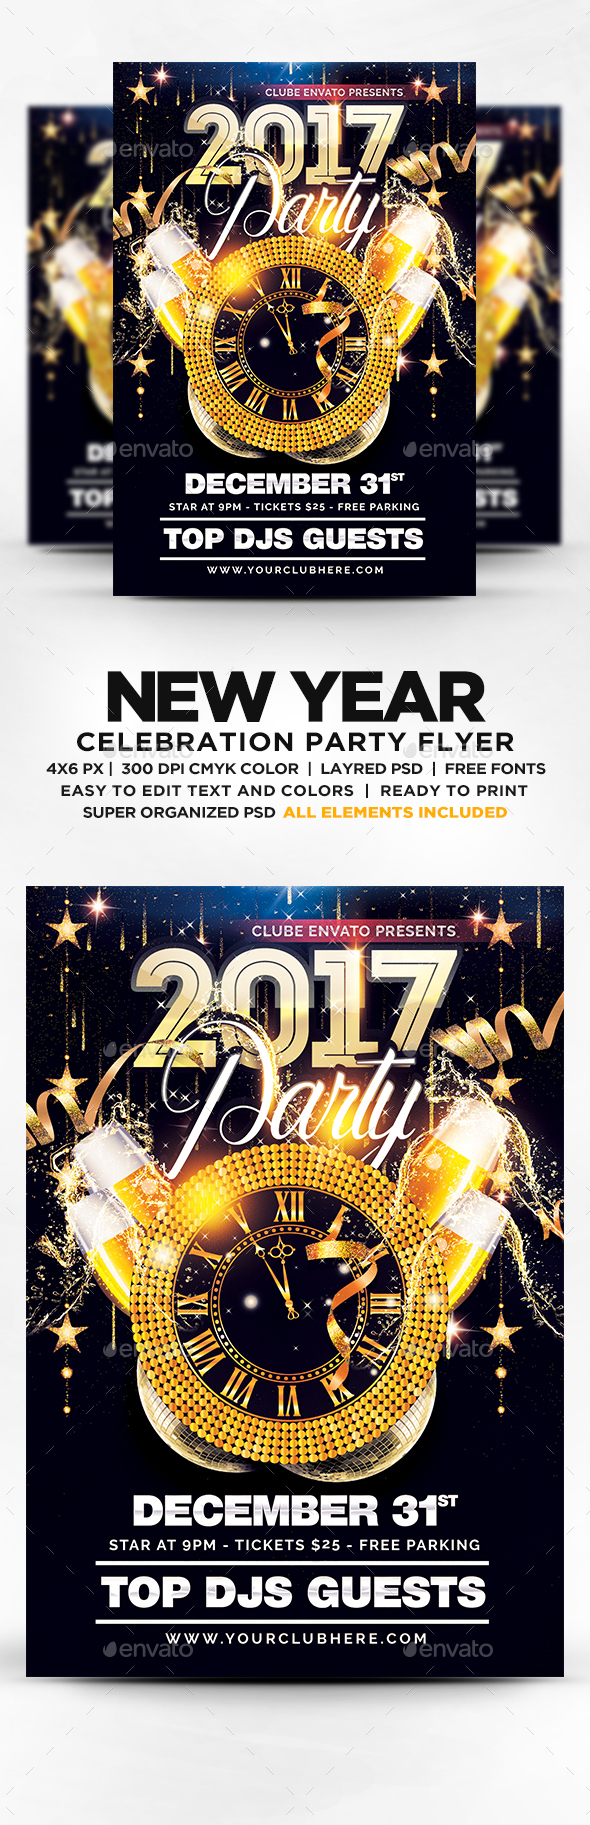 New Year Party Flyer Template Psd  New Year Party Flyer Templates